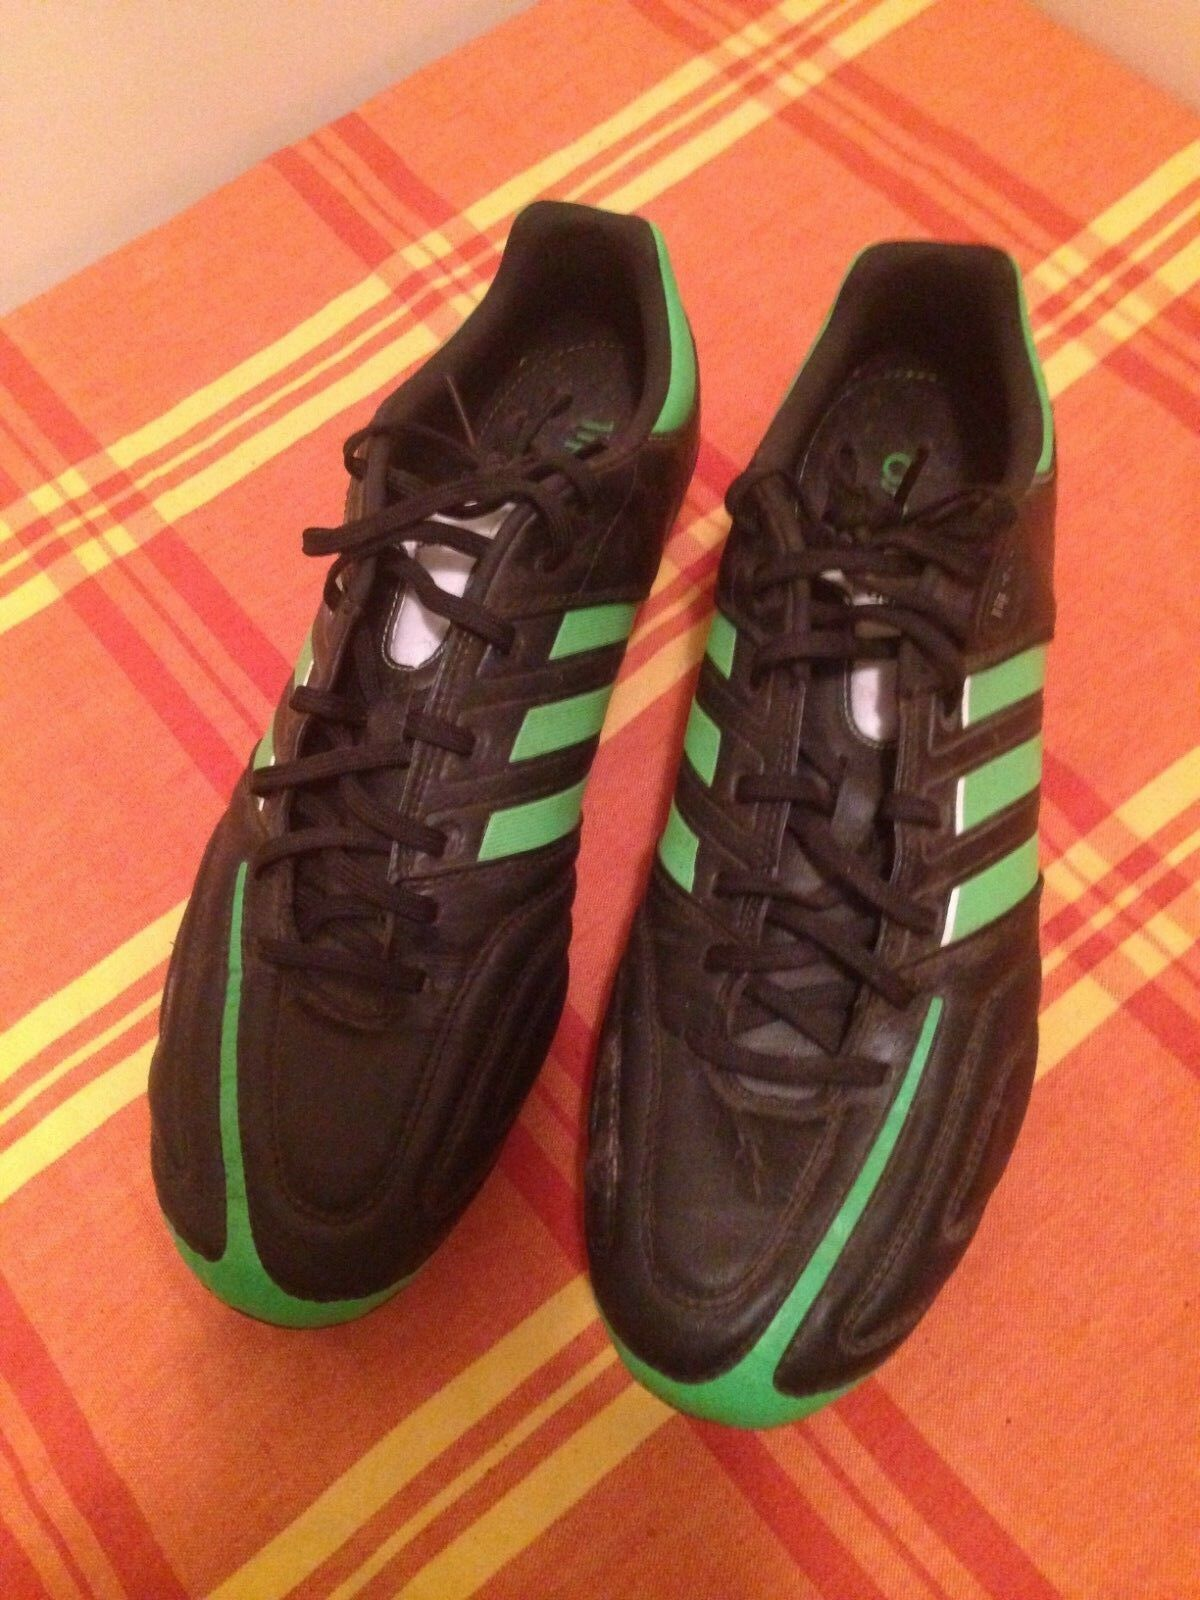 Adidas 11 US Pro Boots - Size US 11 12 5acfd7